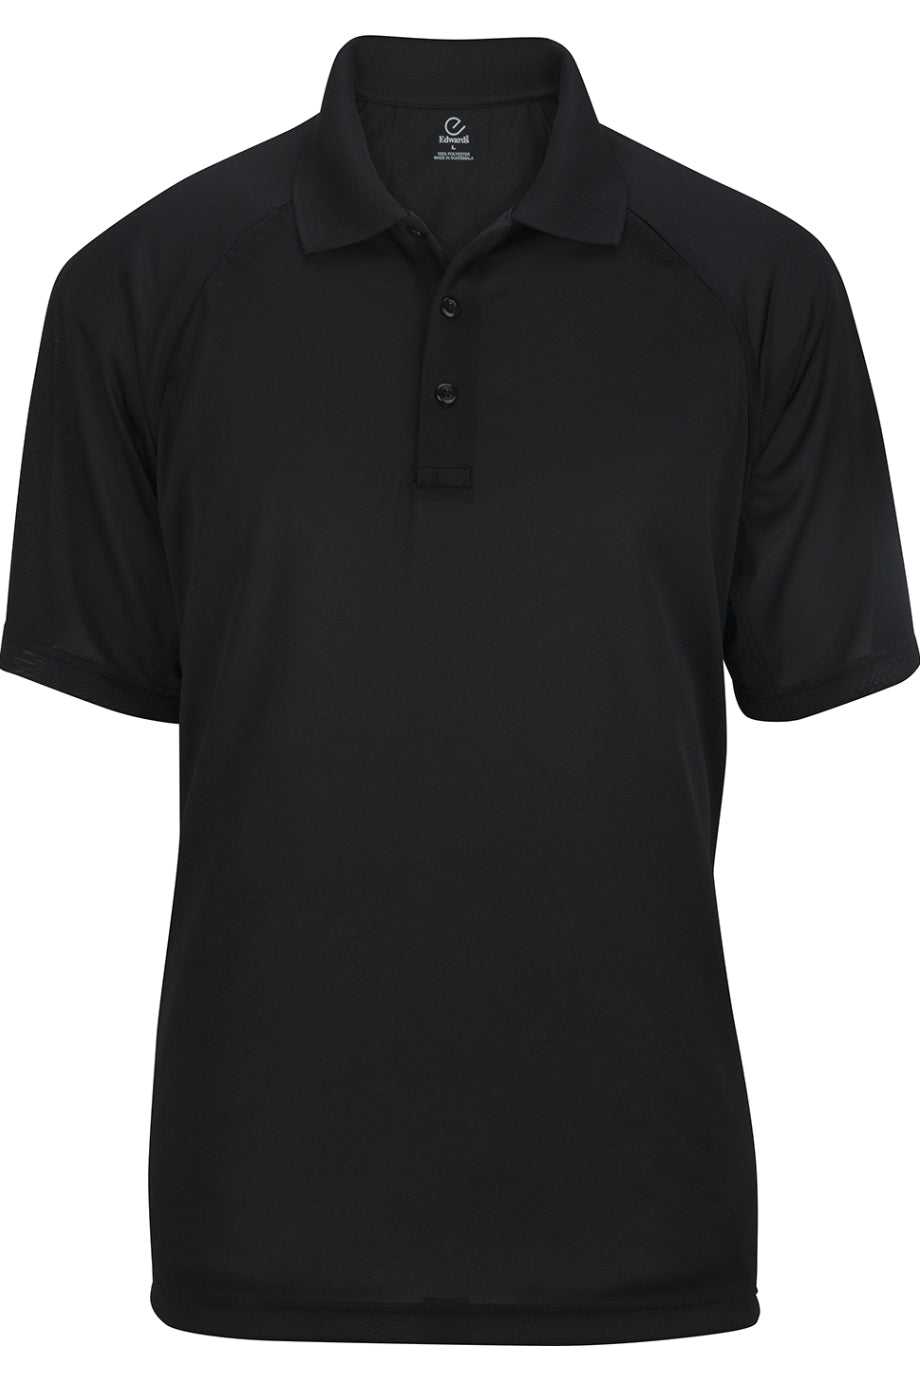 Black Edwards Mens Tactical Snag-Proof Short Sleeve Polo